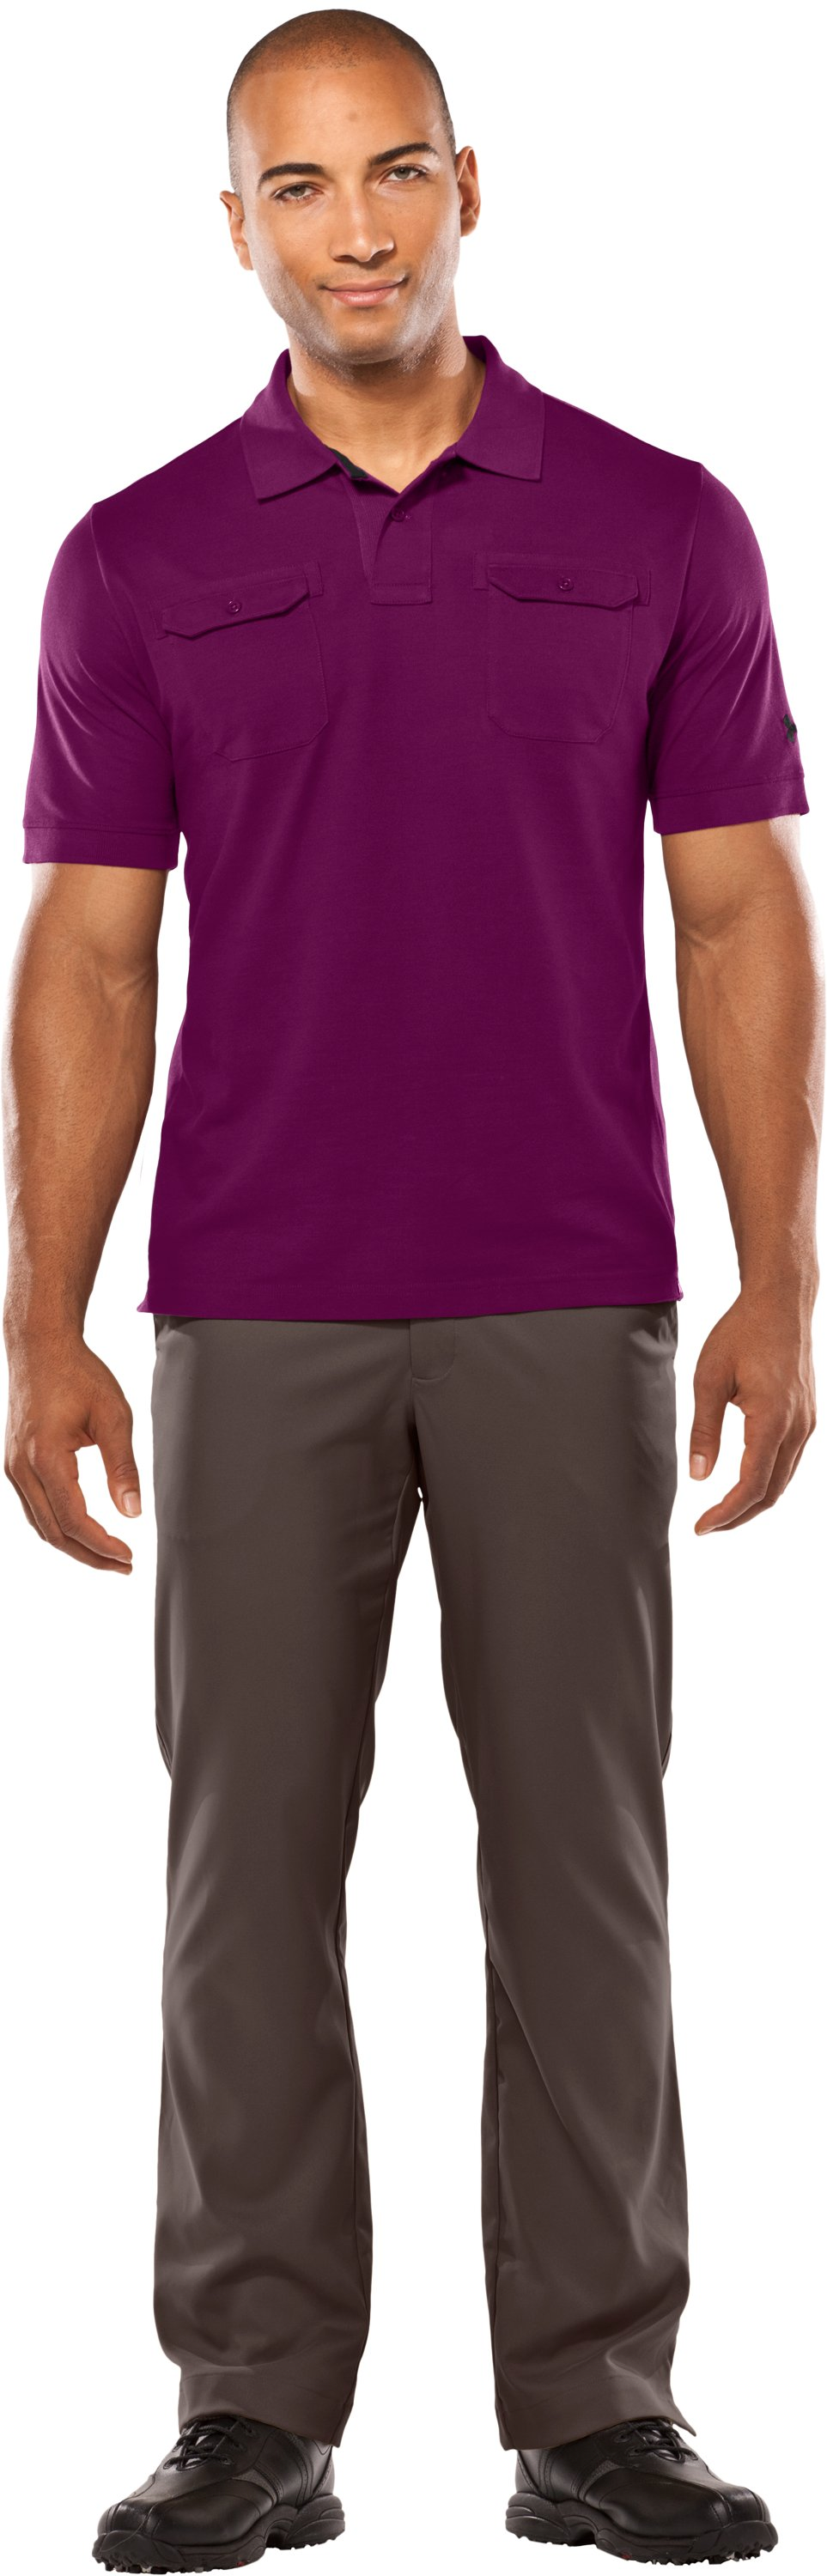 Men's Charged Cotton® Pique Pocket Polo, Beet